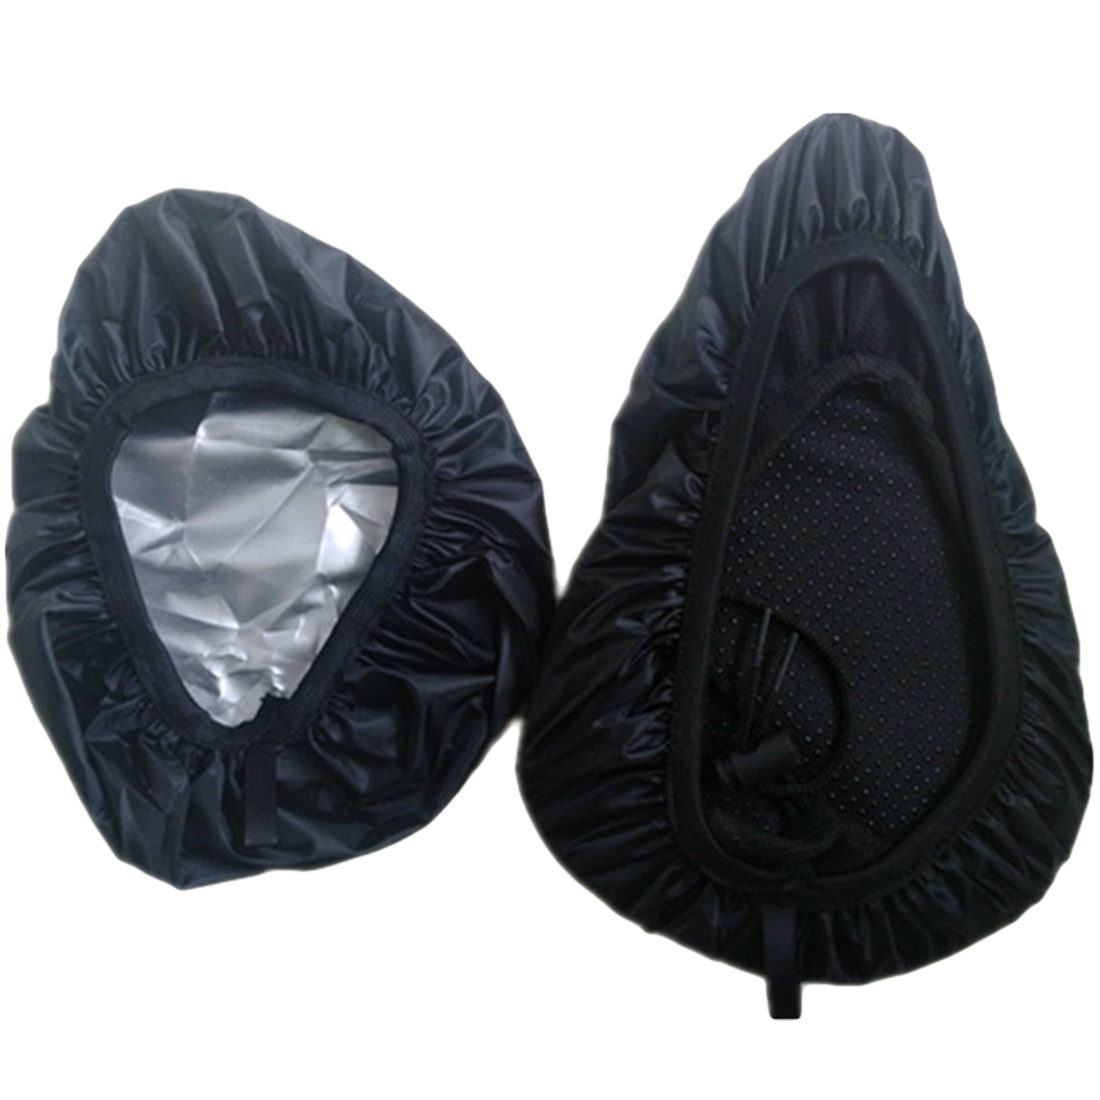 Outdoor Waterproof Cycling Bike Bicycle Seat Rain Cover Elastic Dust and Rain Resistant UV Protector Bike Accessories